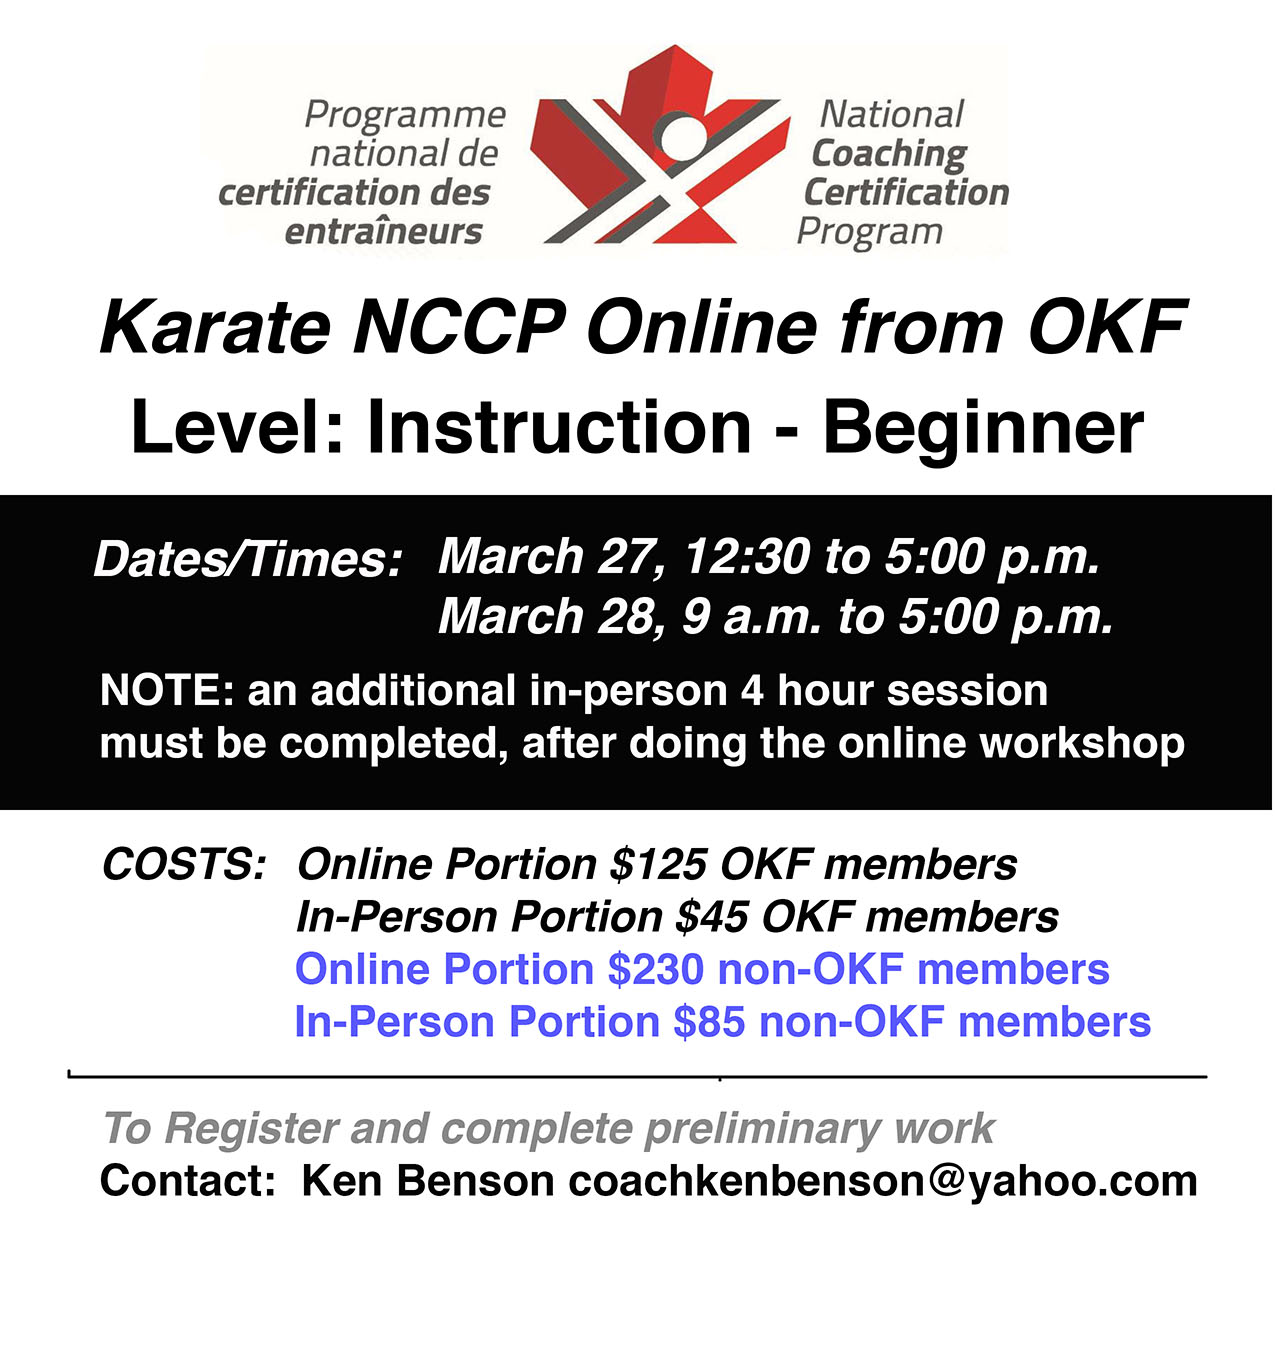 NCCP online course on March 27-28